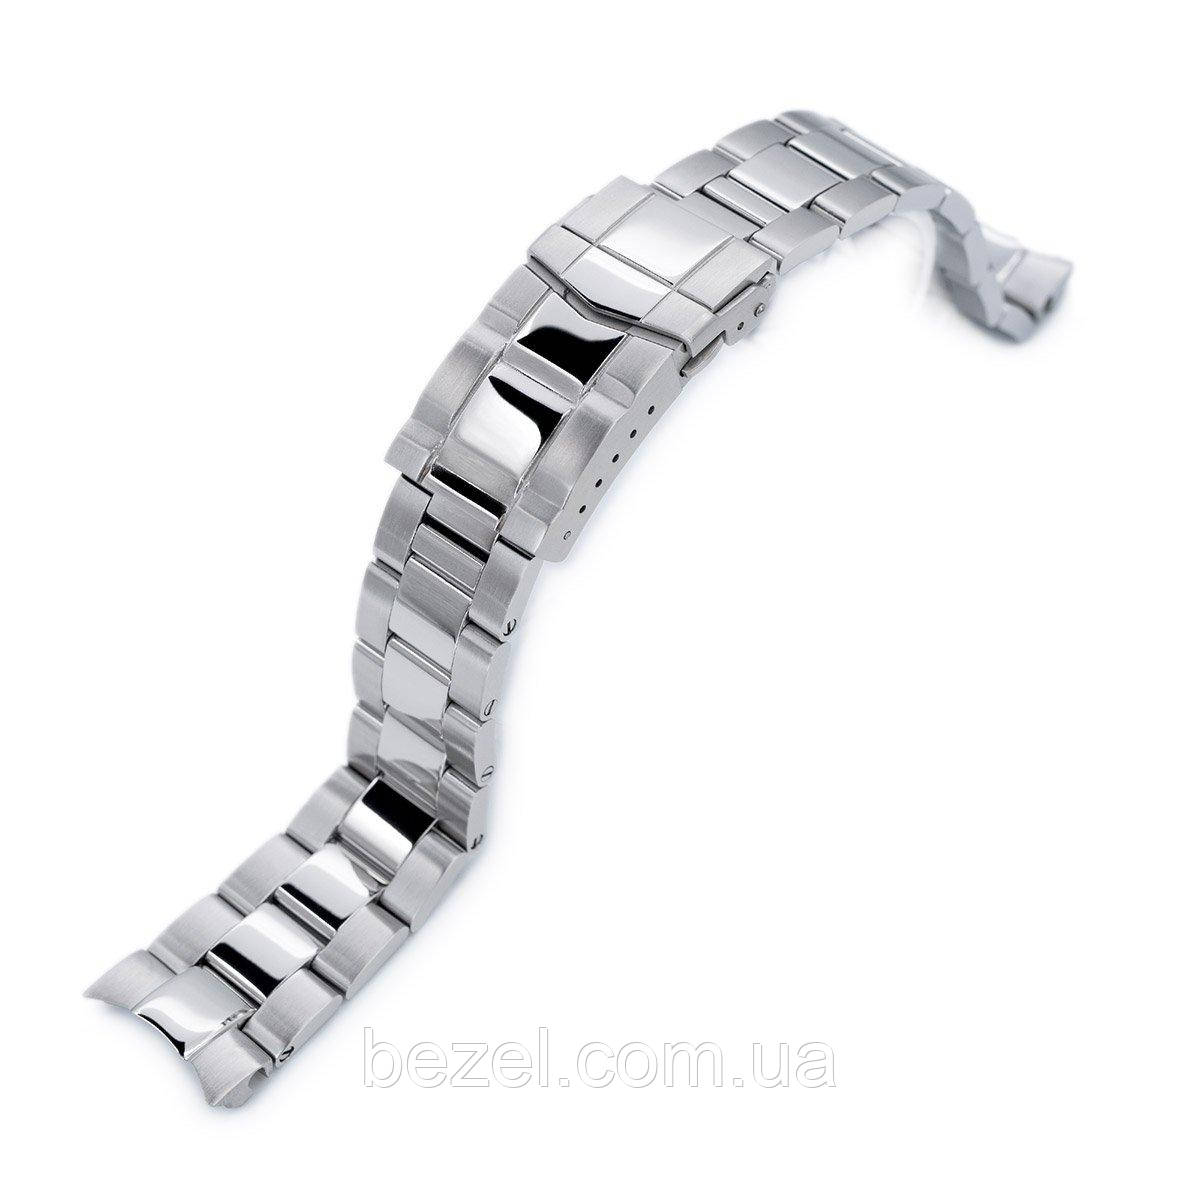 20mm Super 3D Oyster 316L Stainless Steel Watch Bracelet for Seiko Mechanical Automatic SARB033, Polish / Brush Submariner Clasp